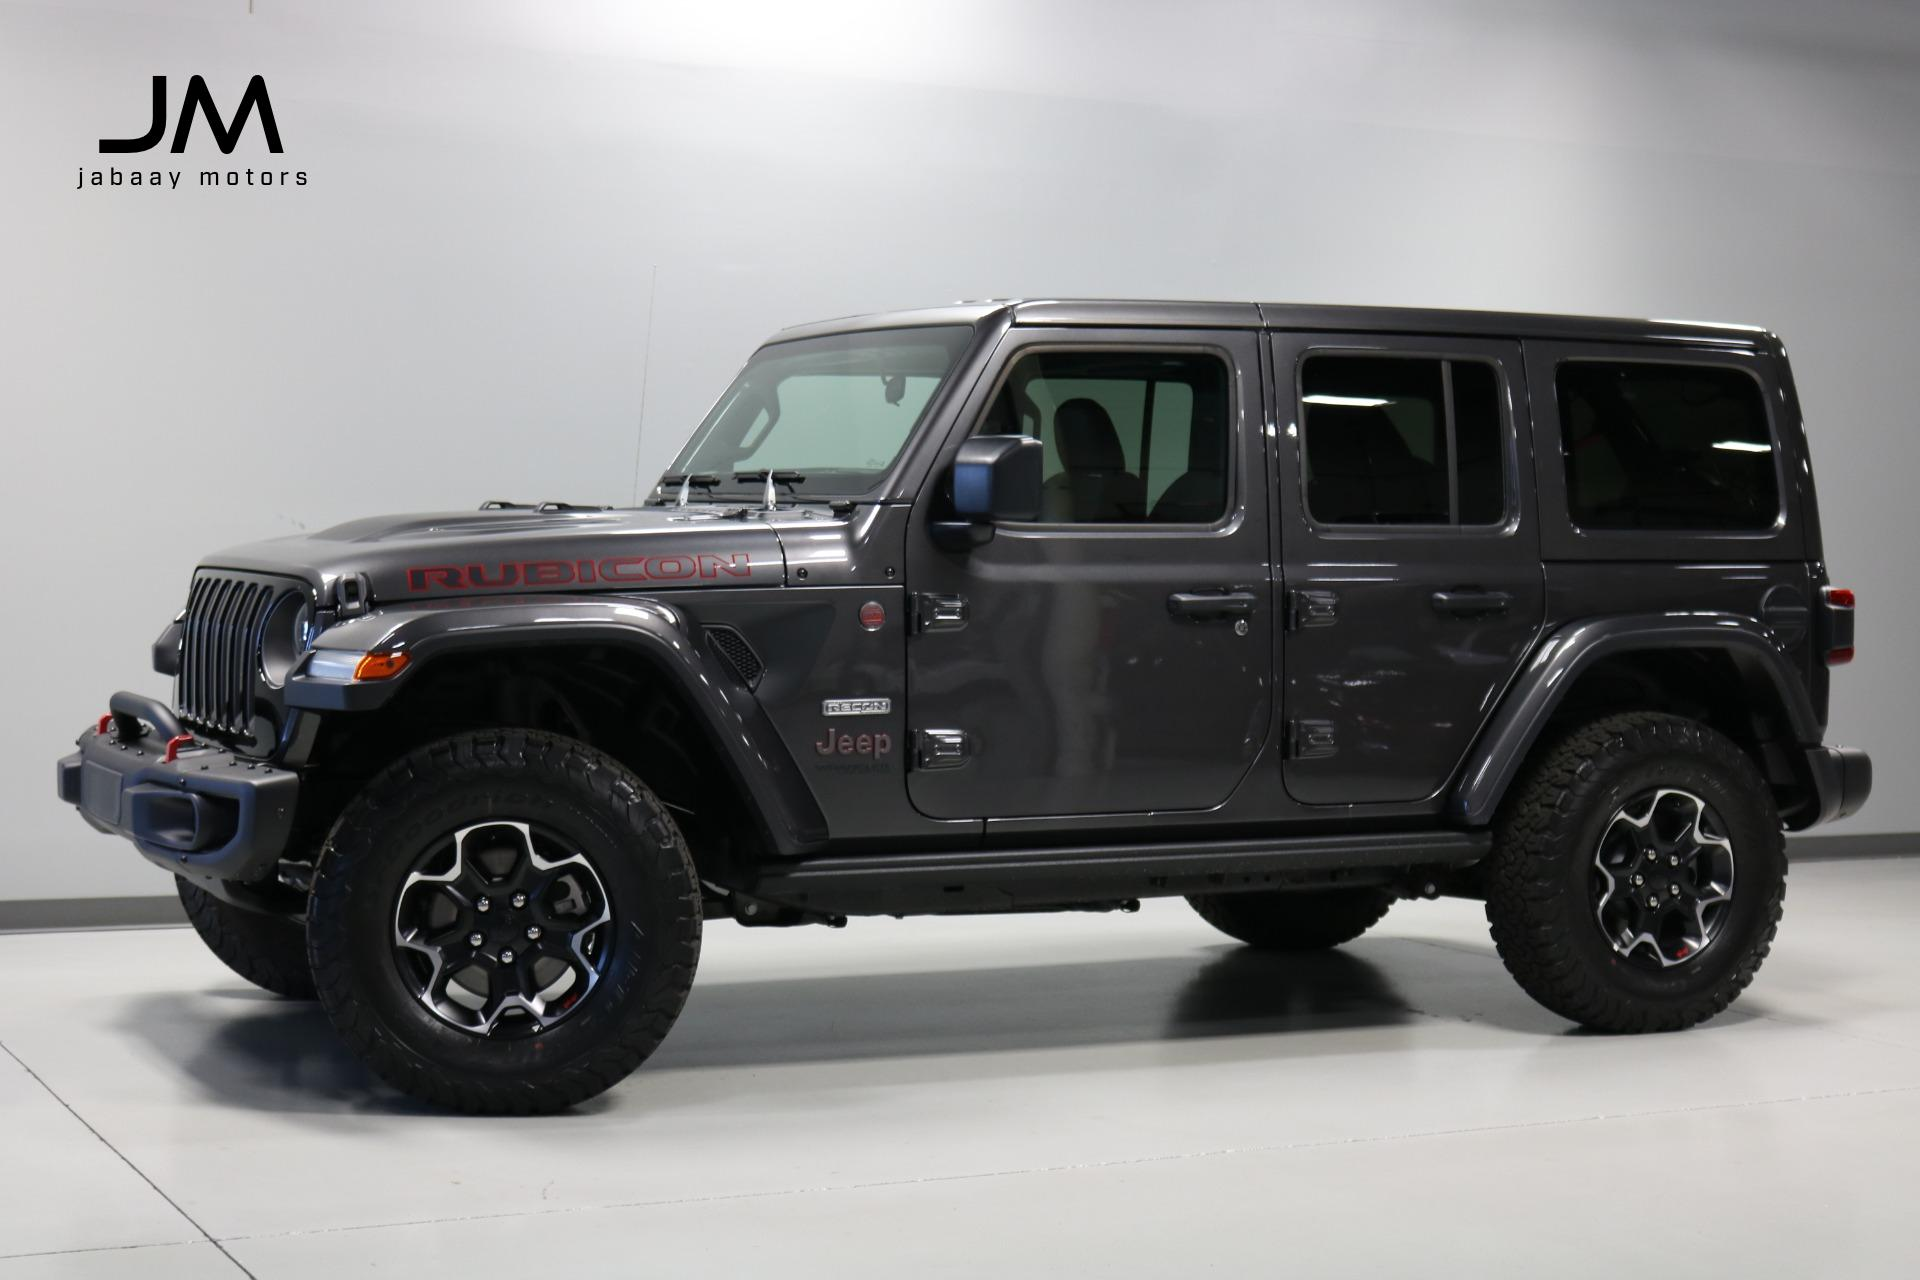 Used 2020 Jeep Wrangler Unlimited Rubicon Recon For Sale Sold Jabaay Motors Inc Stock Jm7399